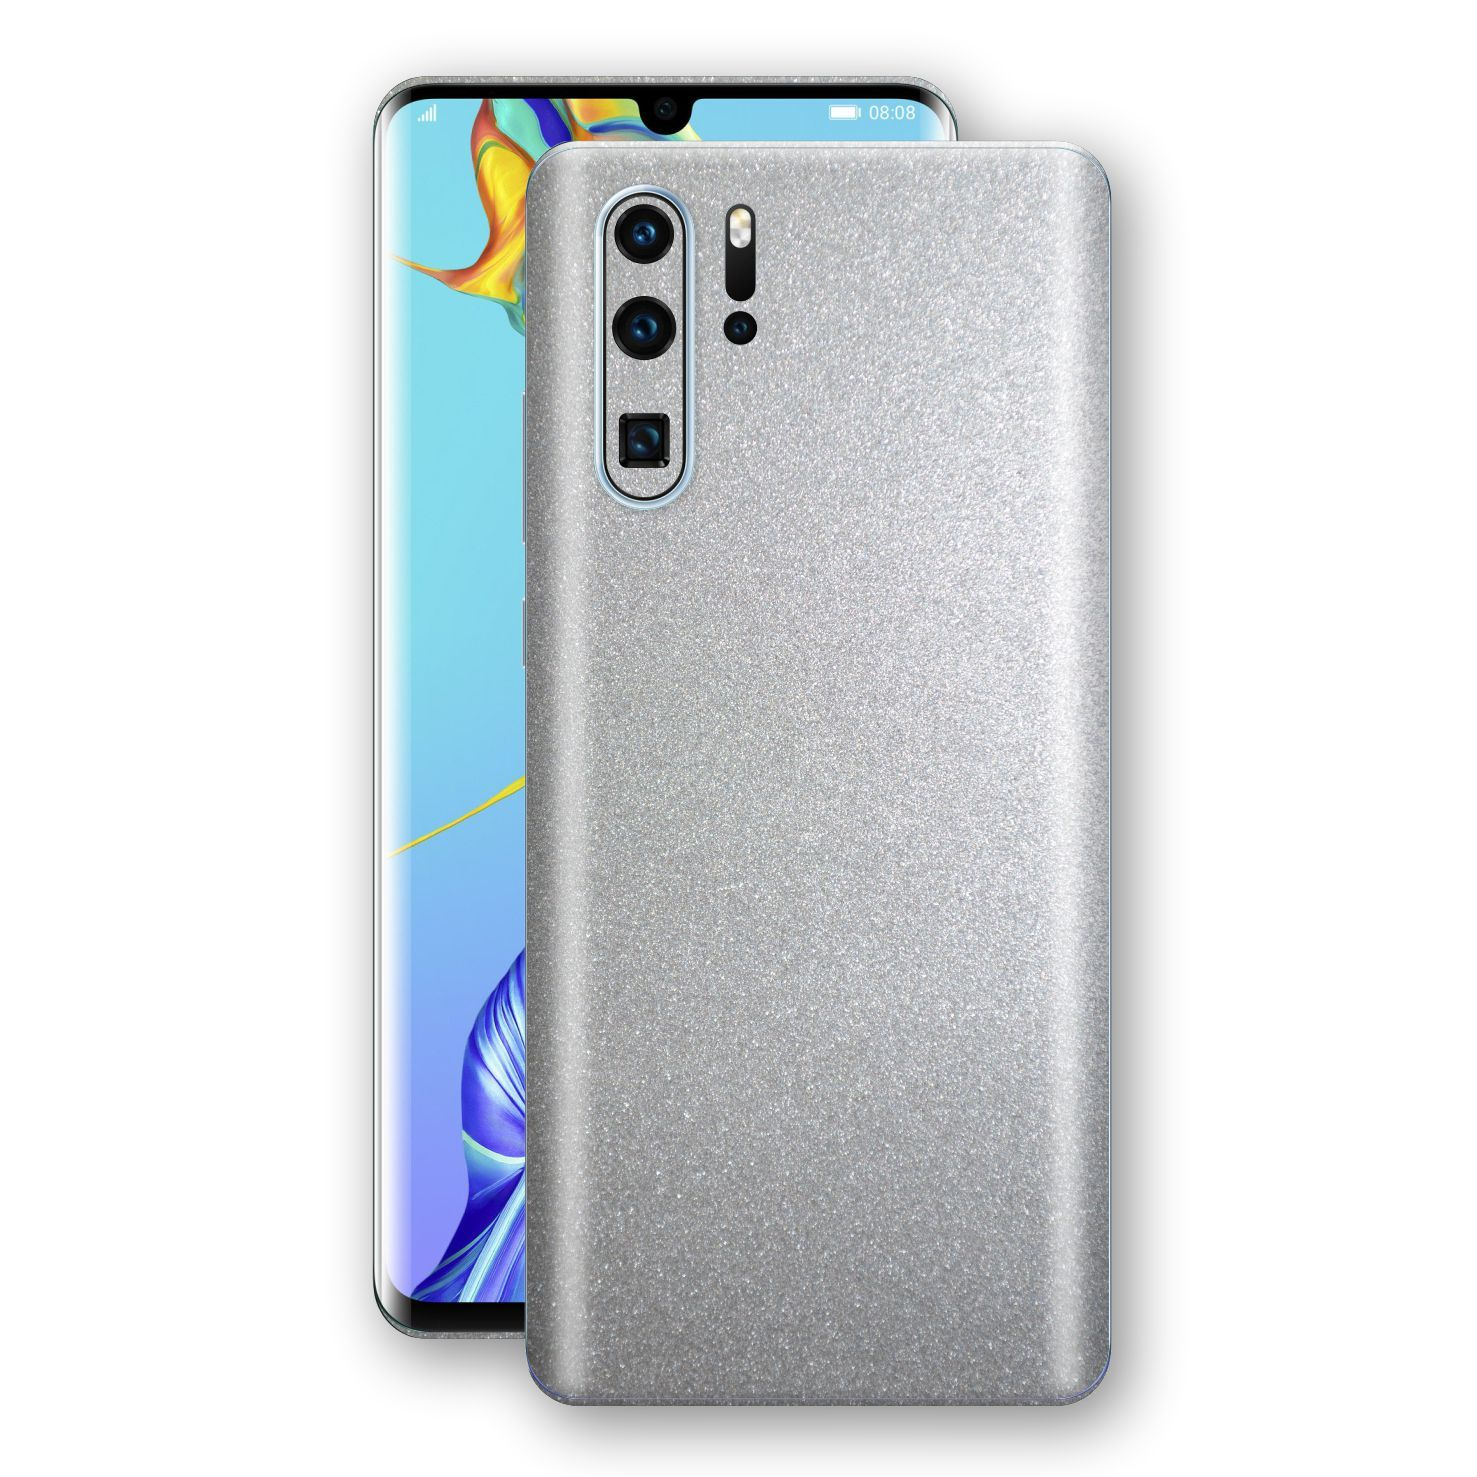 Huawei P30 PRO Silver Glossy Metallic Skin, Decal, Wrap, Protector, Cover by EasySkinz | EasySkinz.com